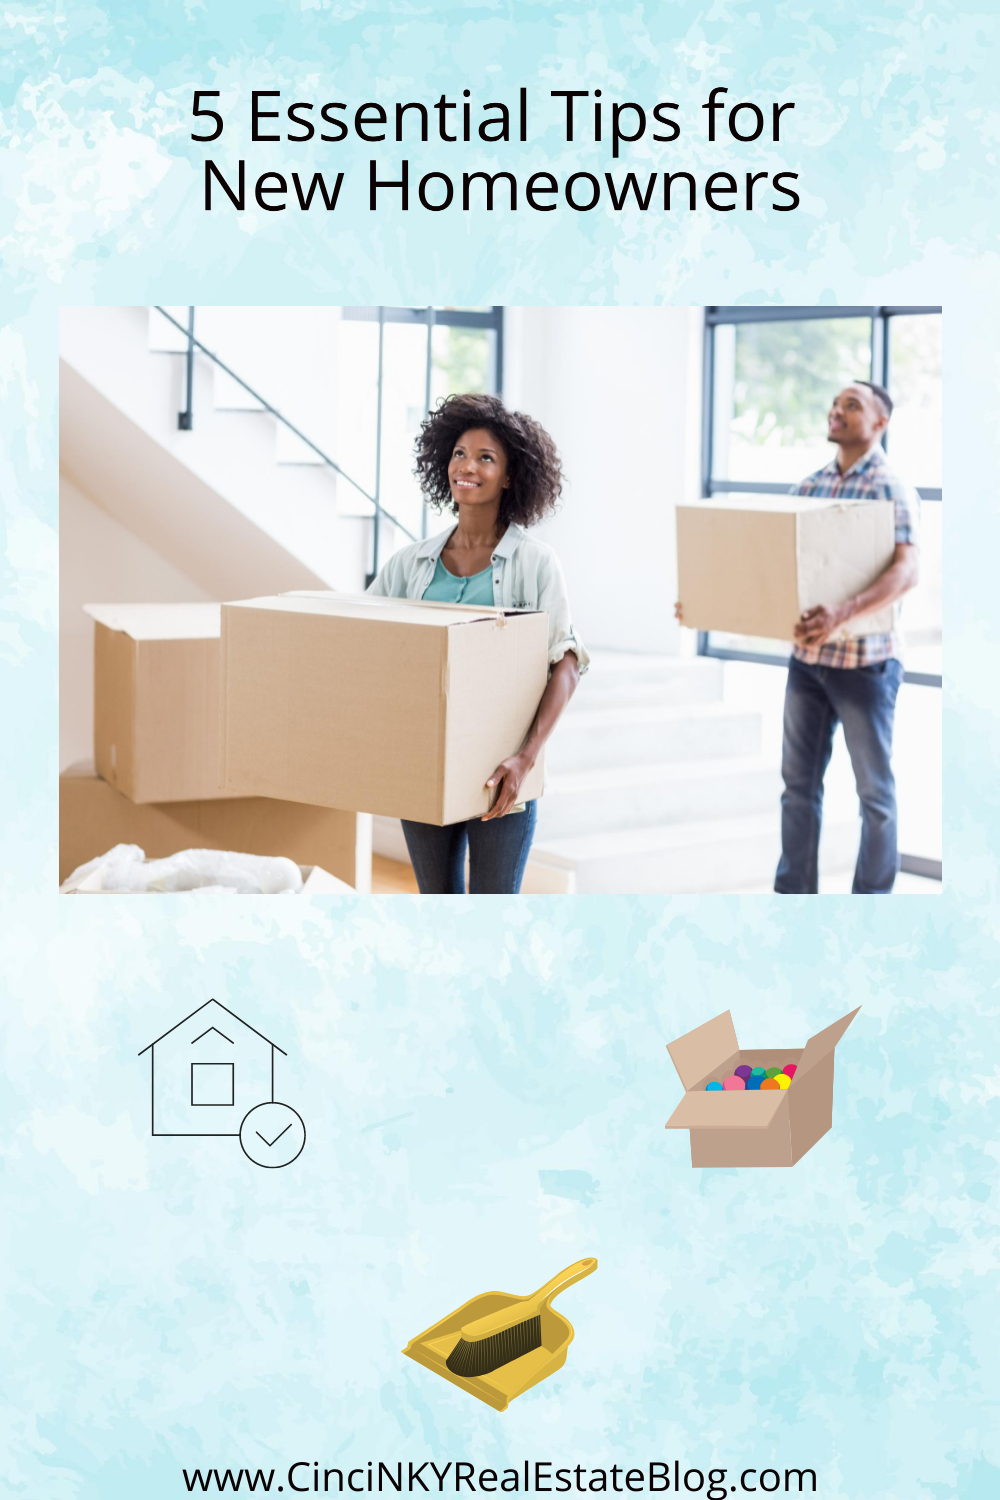 5 Essential Tips for New Homeowners